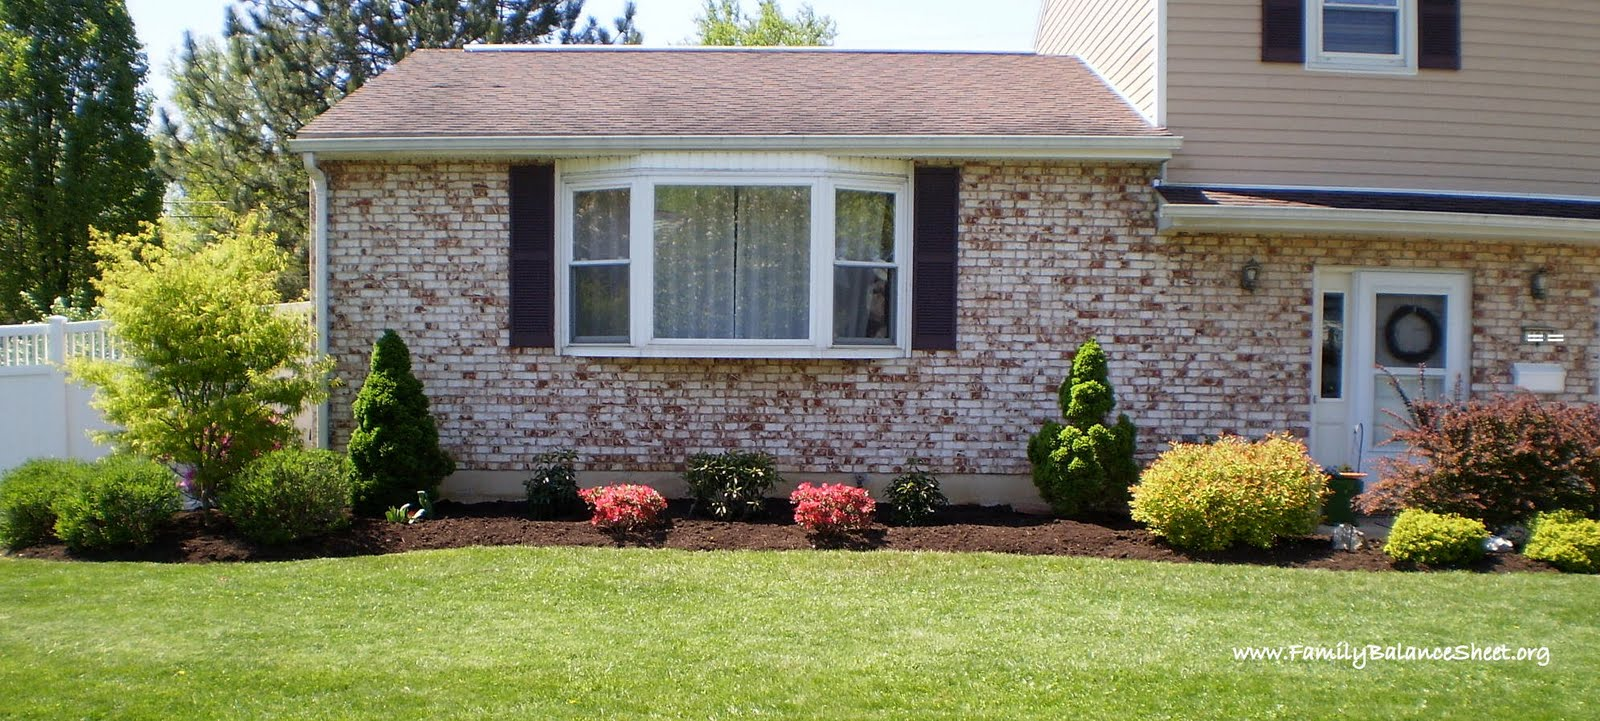 15 tips to help you design your front yard save money too for Front lawn garden design